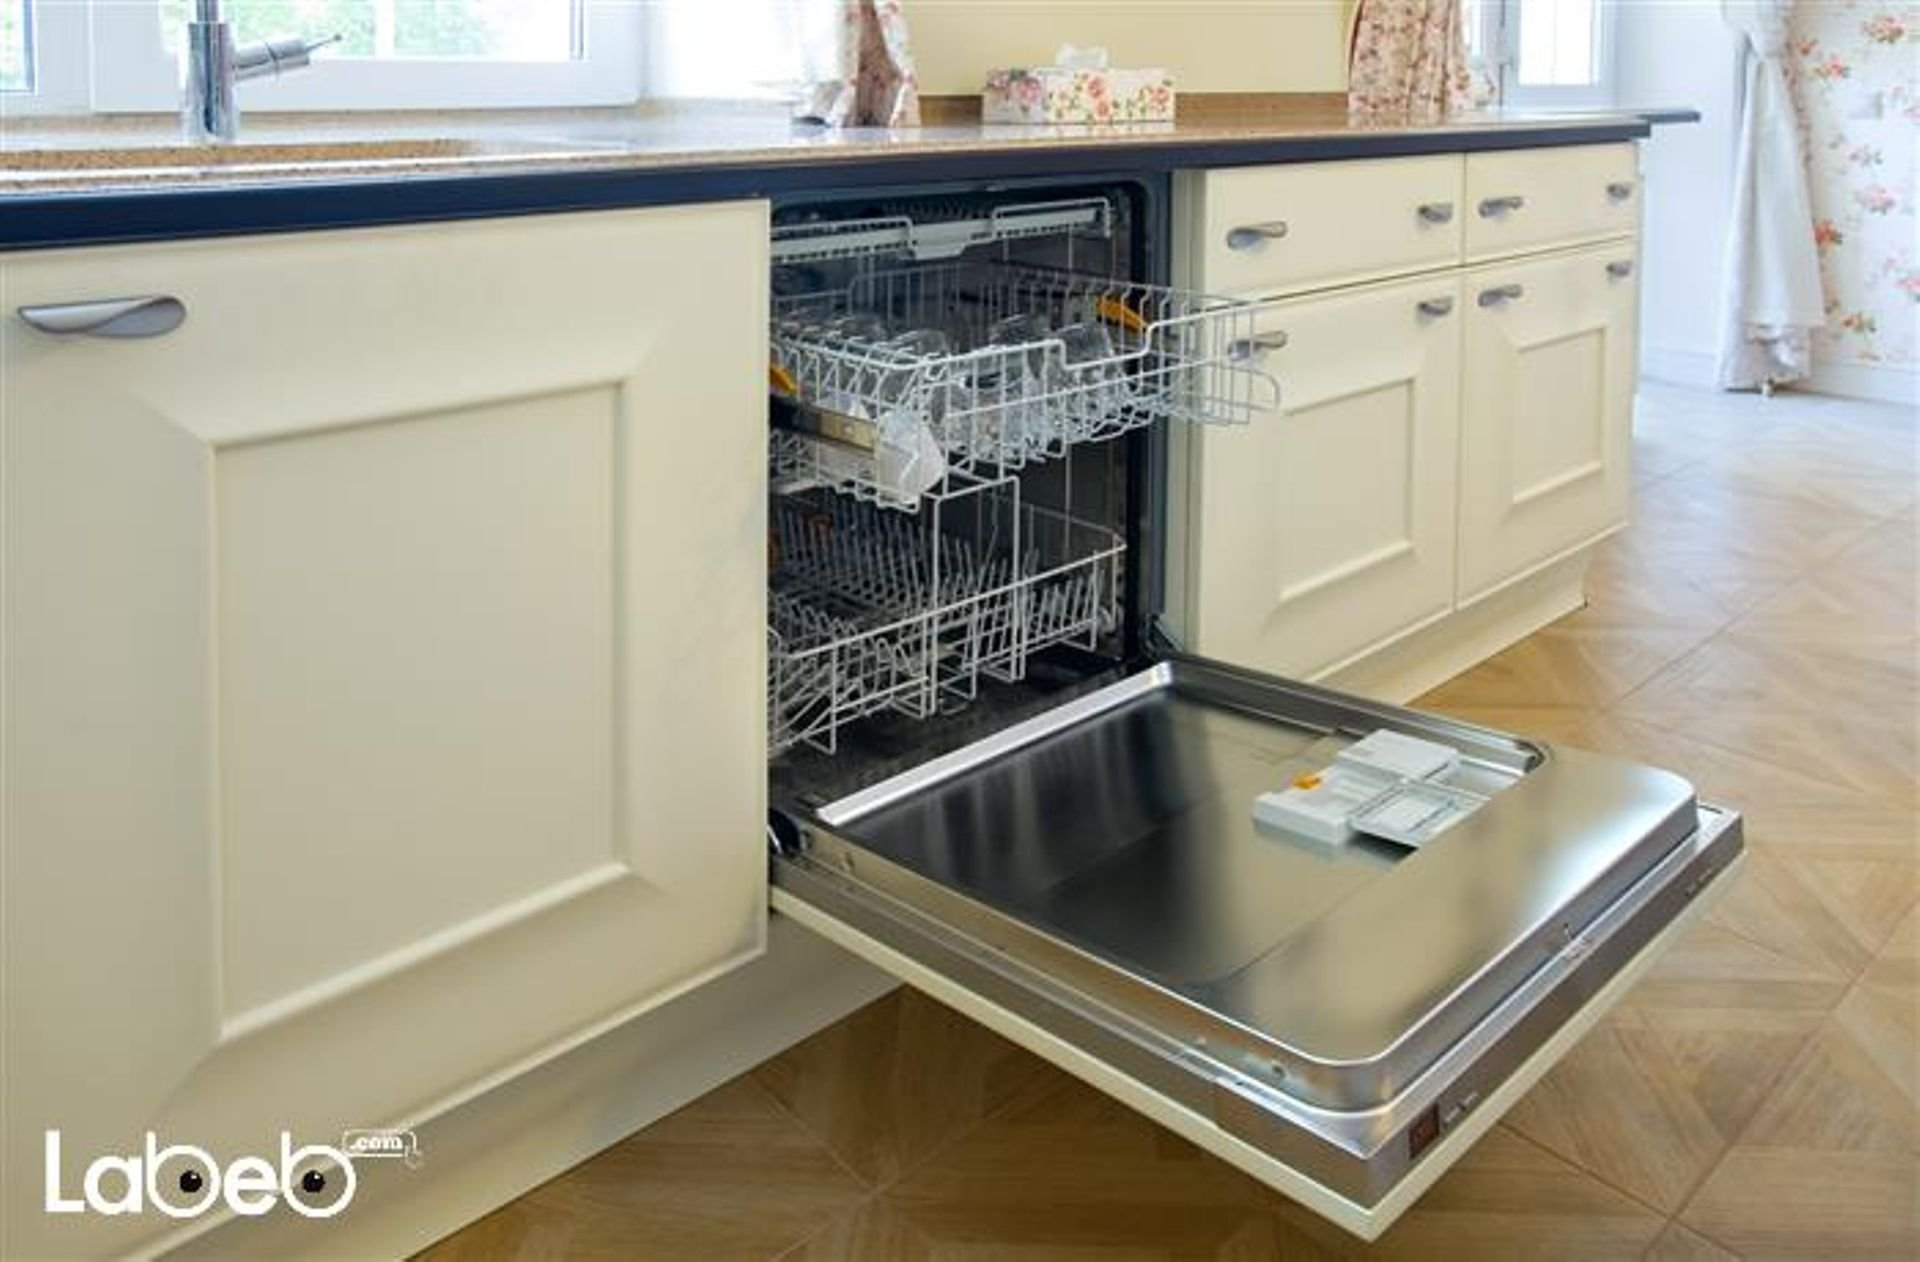 Built in dishwasher